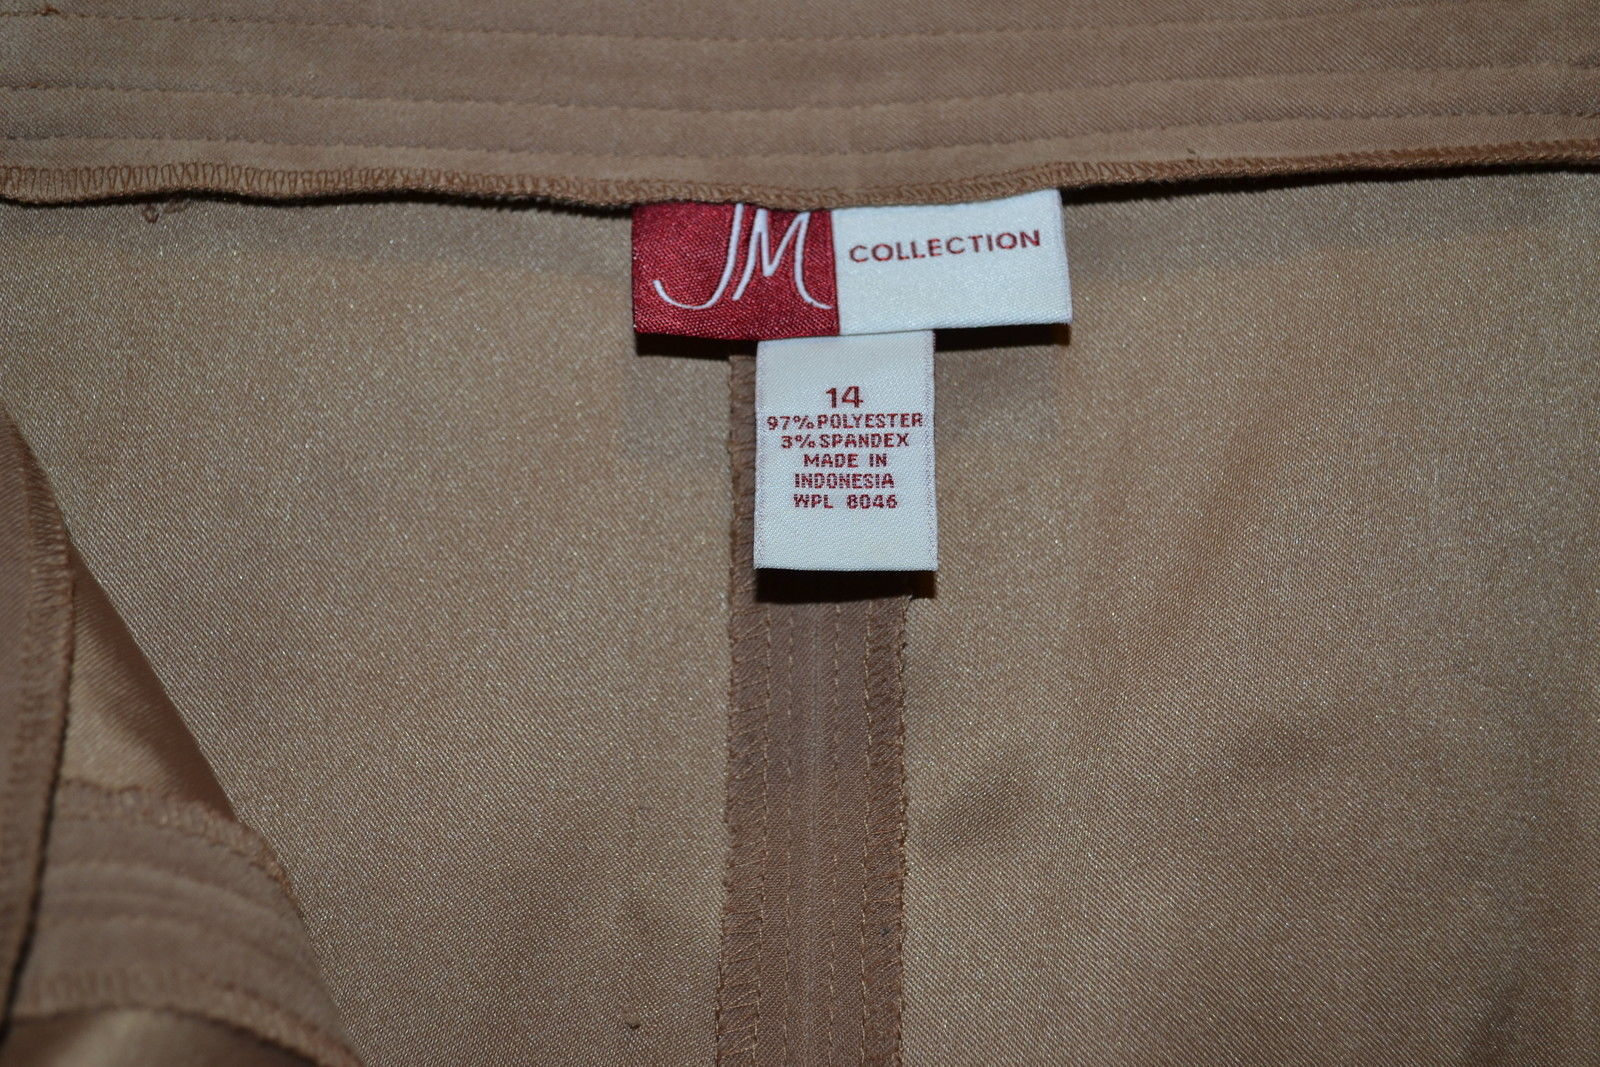 """Size 14 Waist 36"""" Keen Camel Brown Colored Skirt by JM CollectionsRox178"""